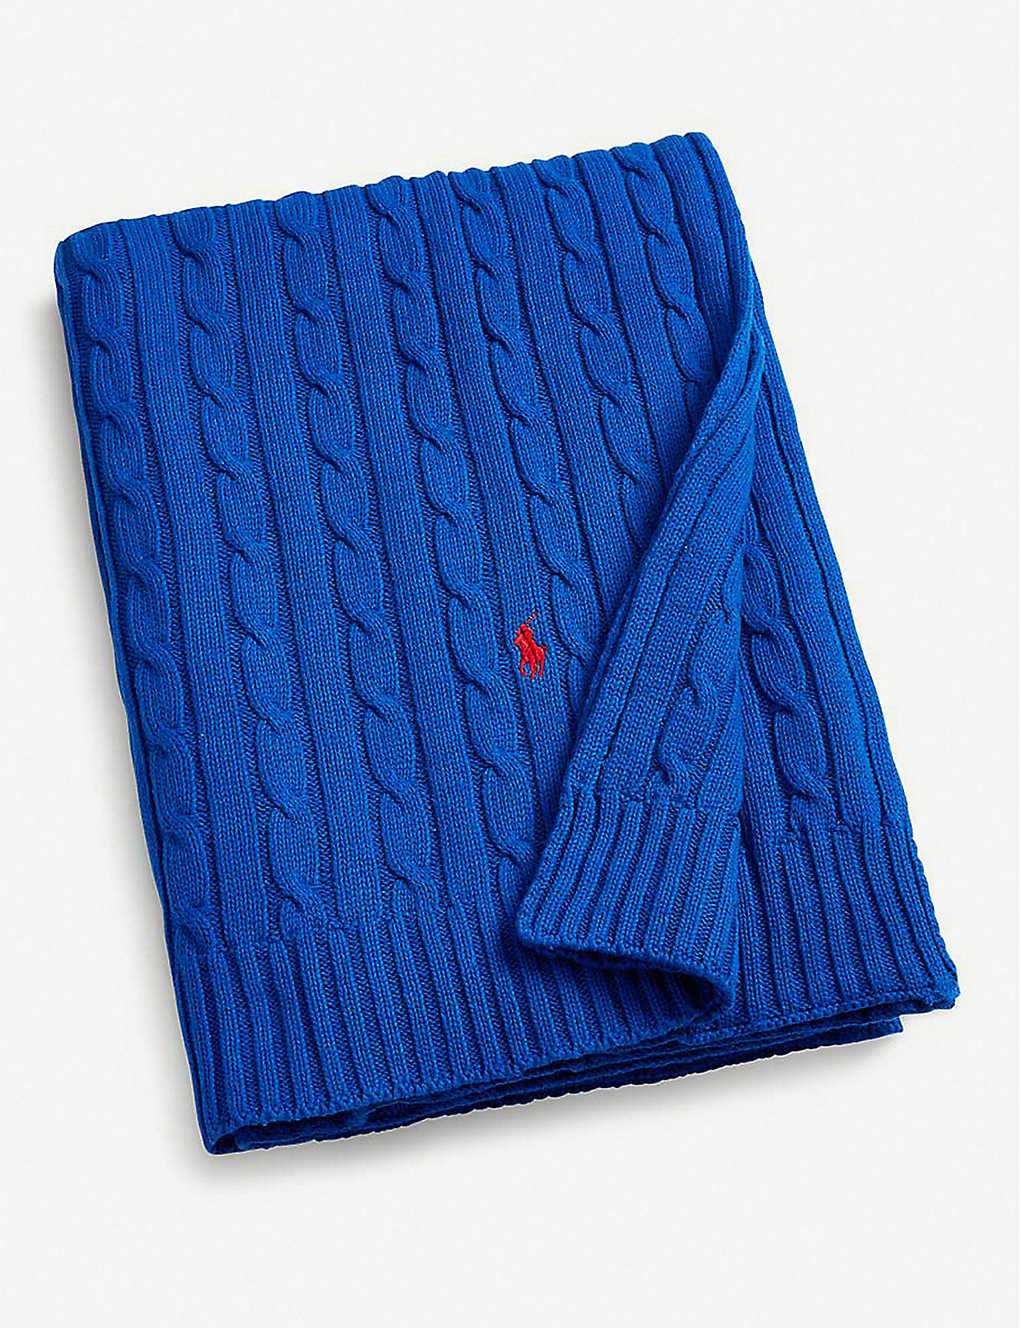 RALPH LAUREN HOME: Logo-embroidered cable-knit cotton throw 177cm x 127cm